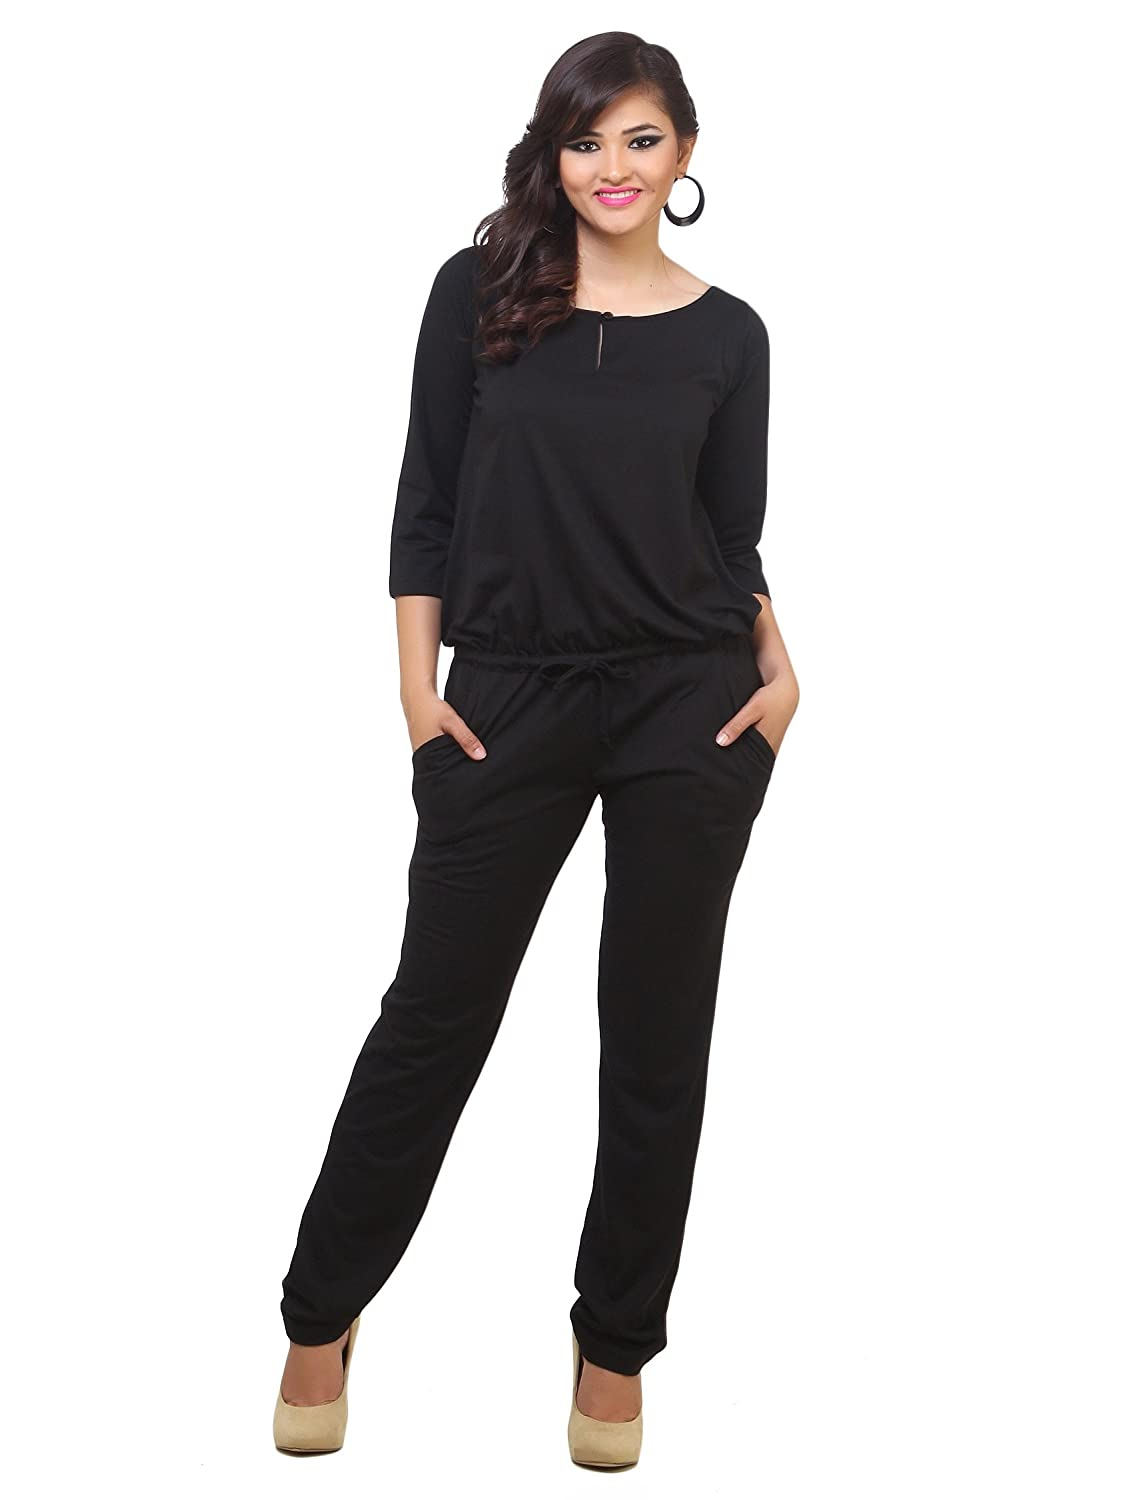 meet details for best sell Buy Cottinfab Women's Rayon Jumpsuit(0_Black_) at Amazon.in